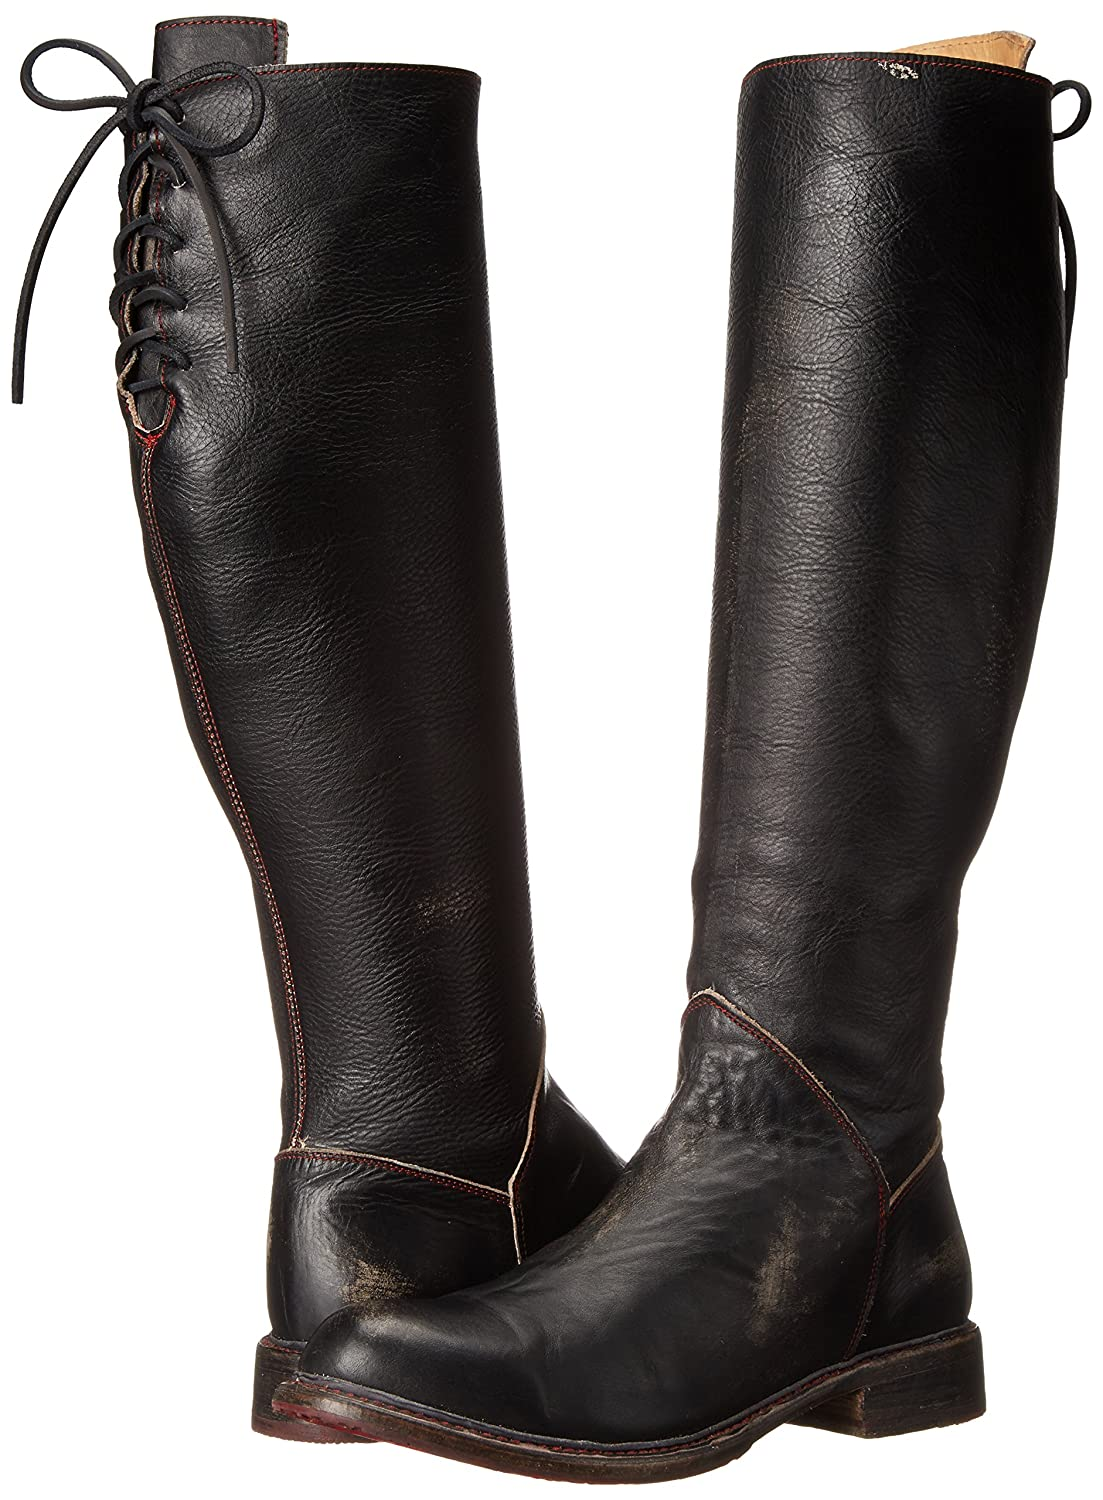 Bed|Stu Women's Manchester Knee-High Boot B00JJW2VV6 11 B(M) US|Black Handwash